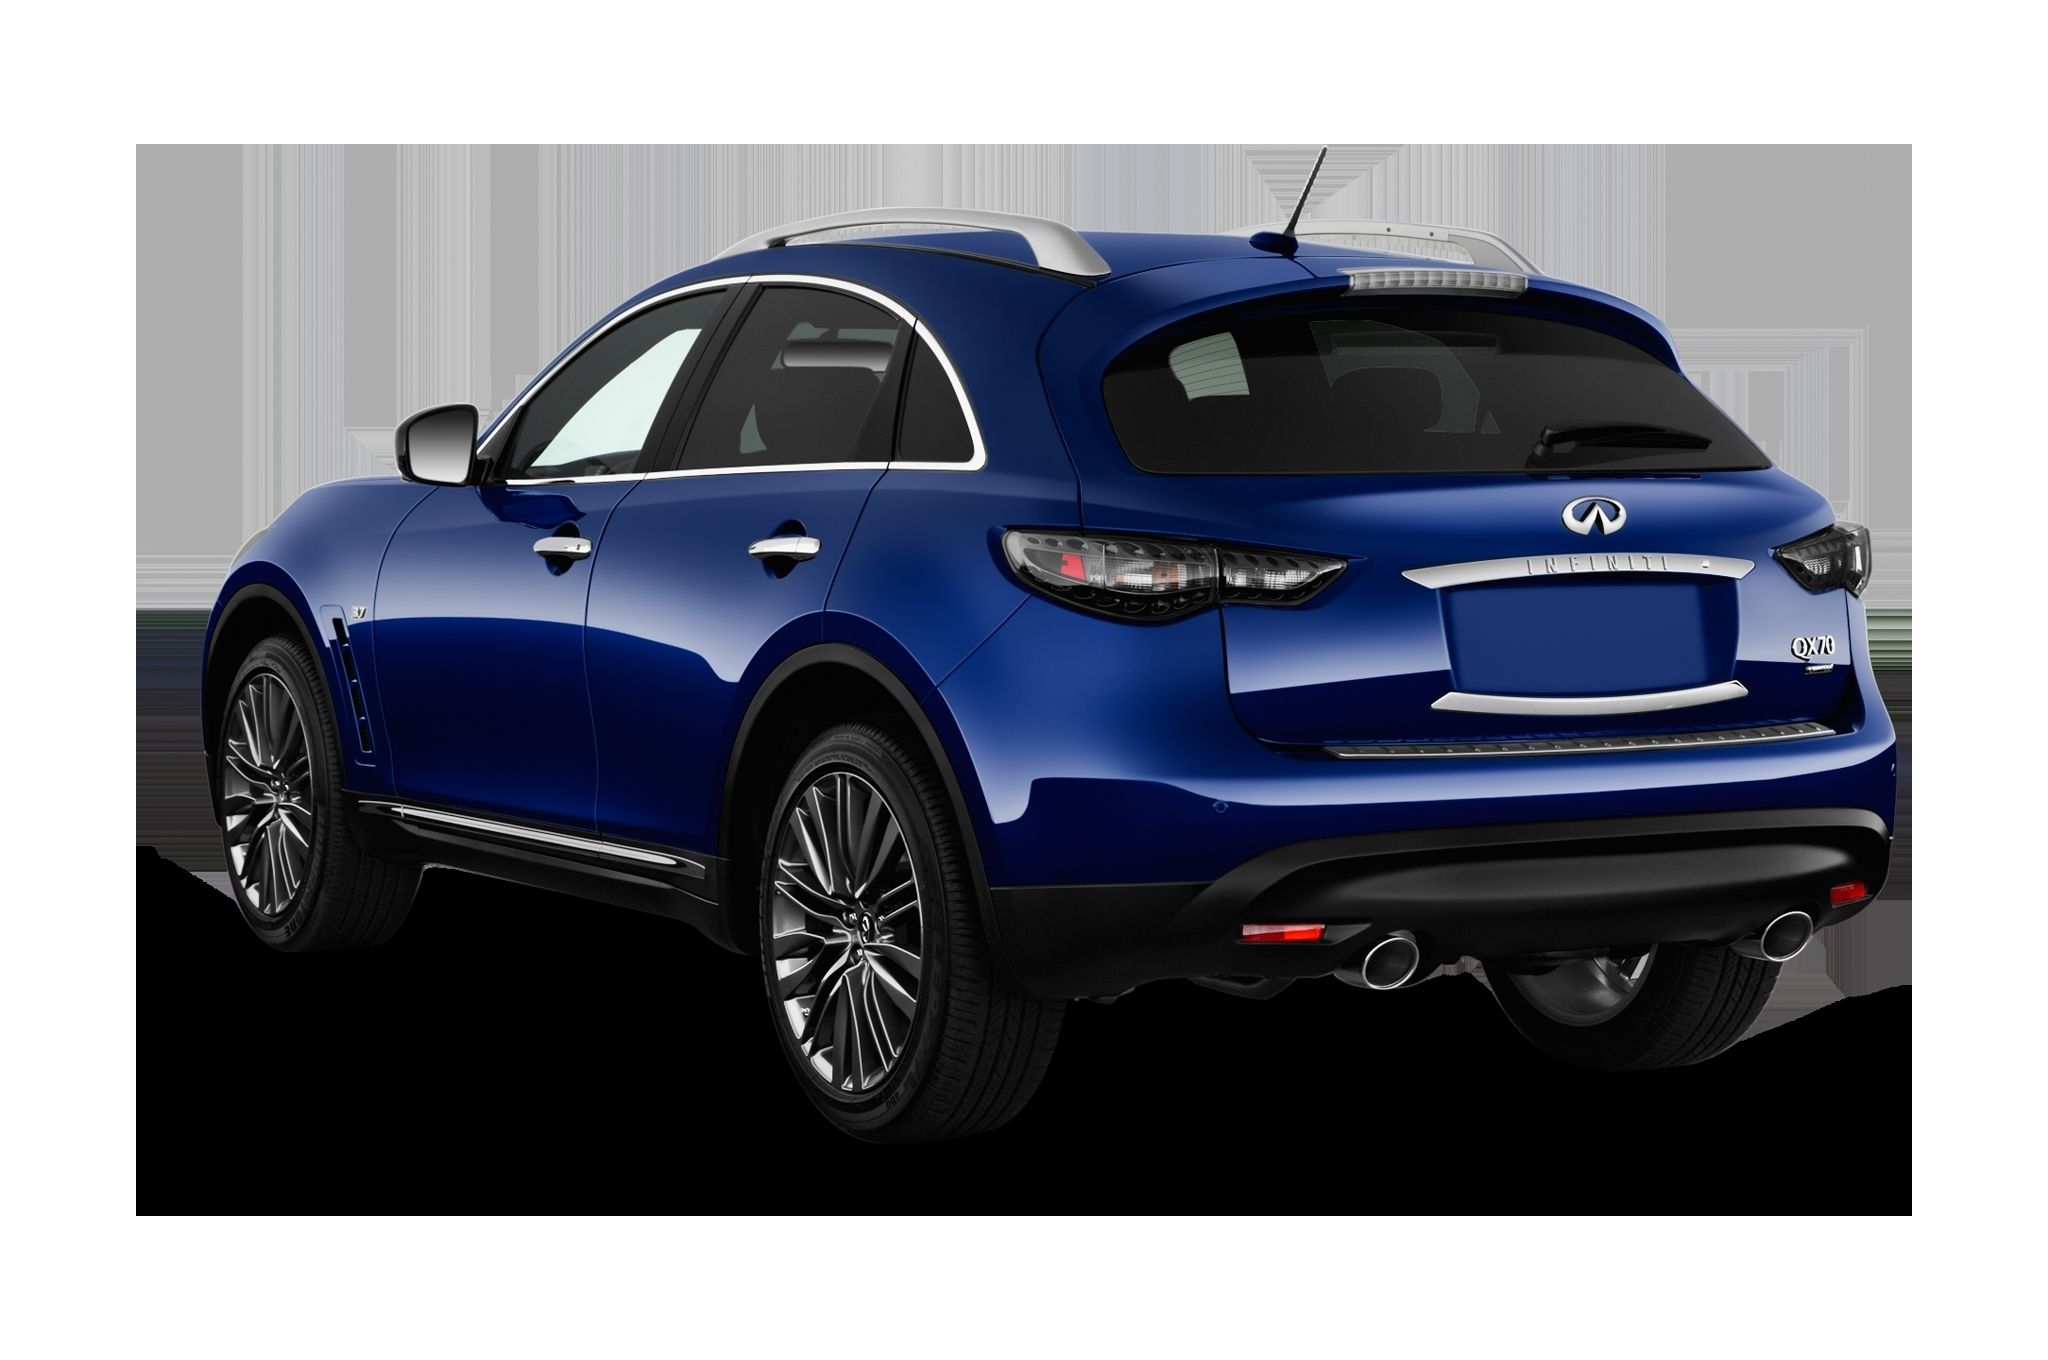 2019 Infiniti Qx70 Specs and Review (With images) Suv